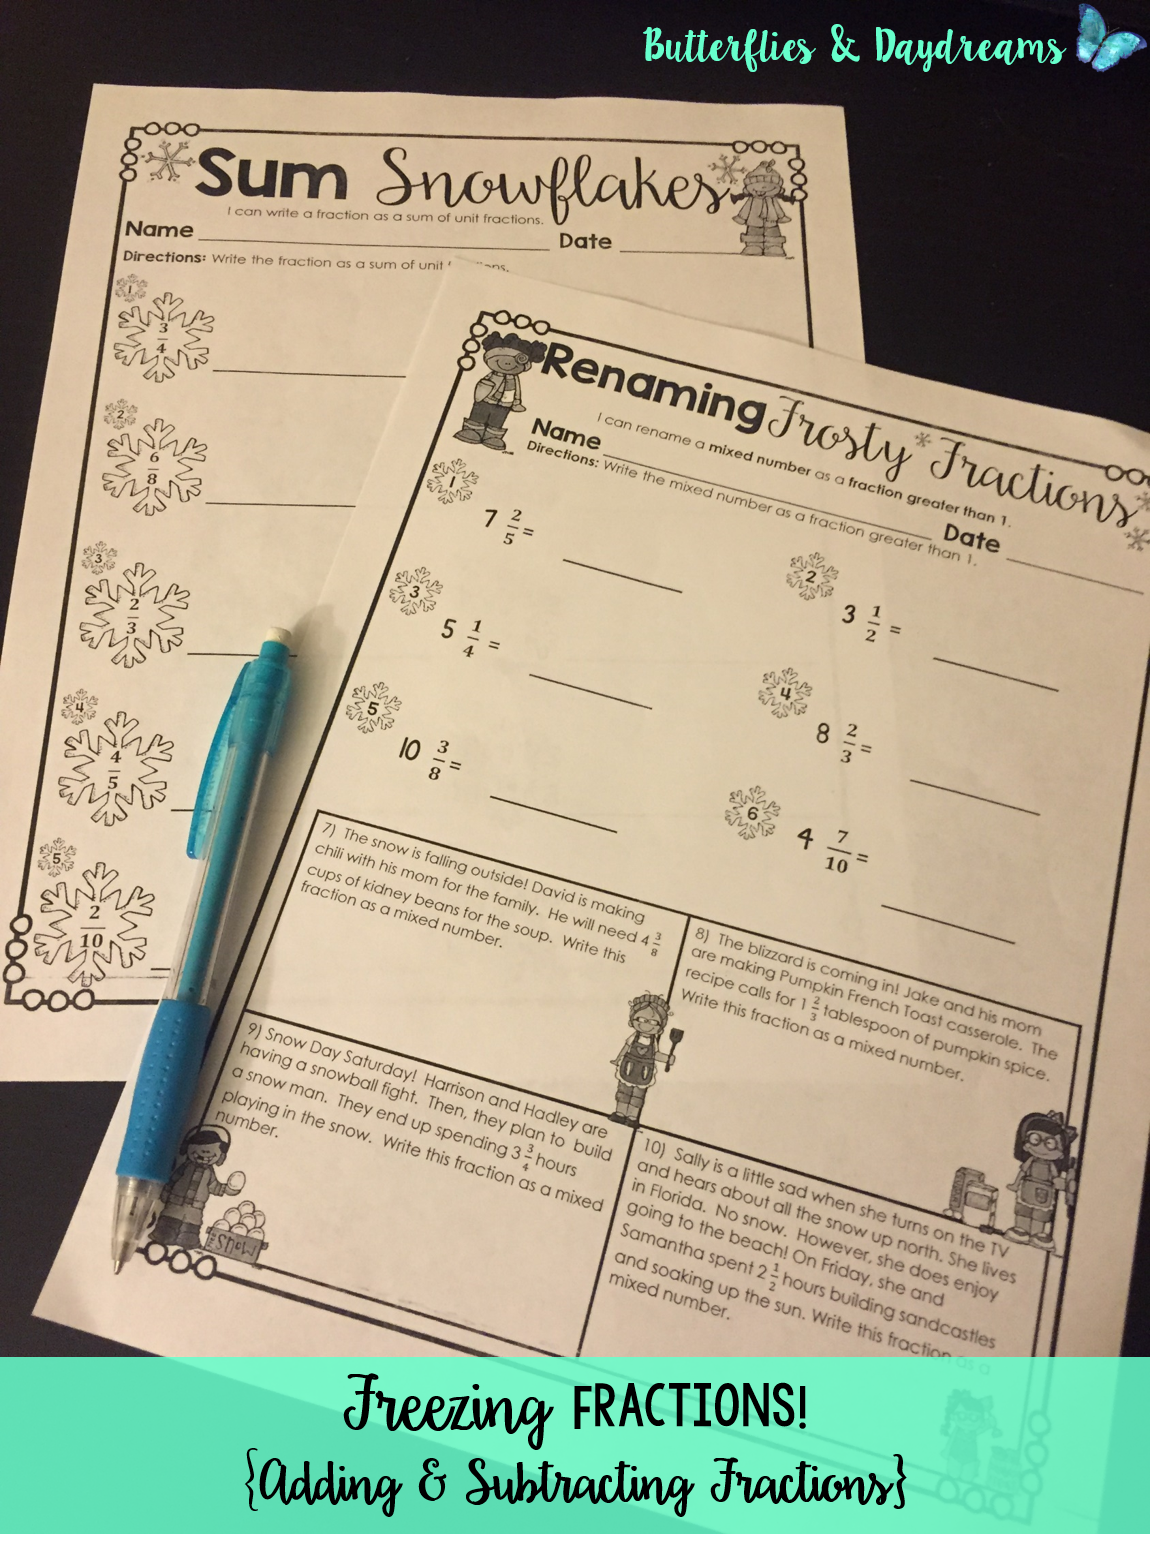 Adding Subtracting Fractions Freezing Fractions Printable Pages Math Journal Problems 4th Grade Common Core Al Free Math Lessons Learning Math Fractions [ 1566 x 1150 Pixel ]